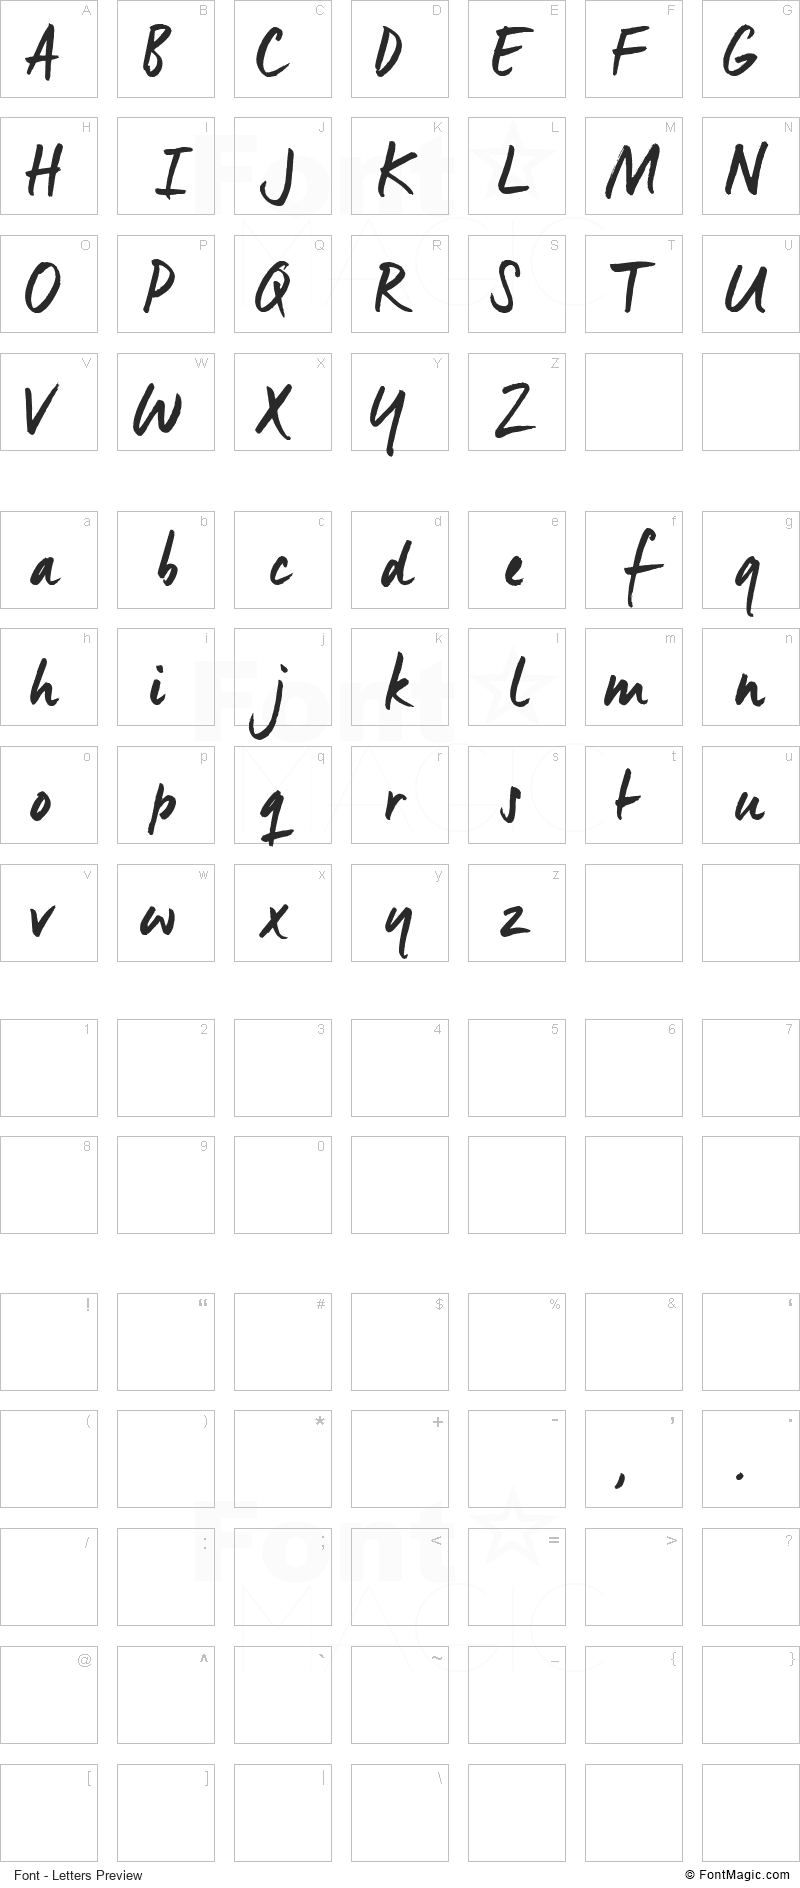 Manus Font - All Latters Preview Chart